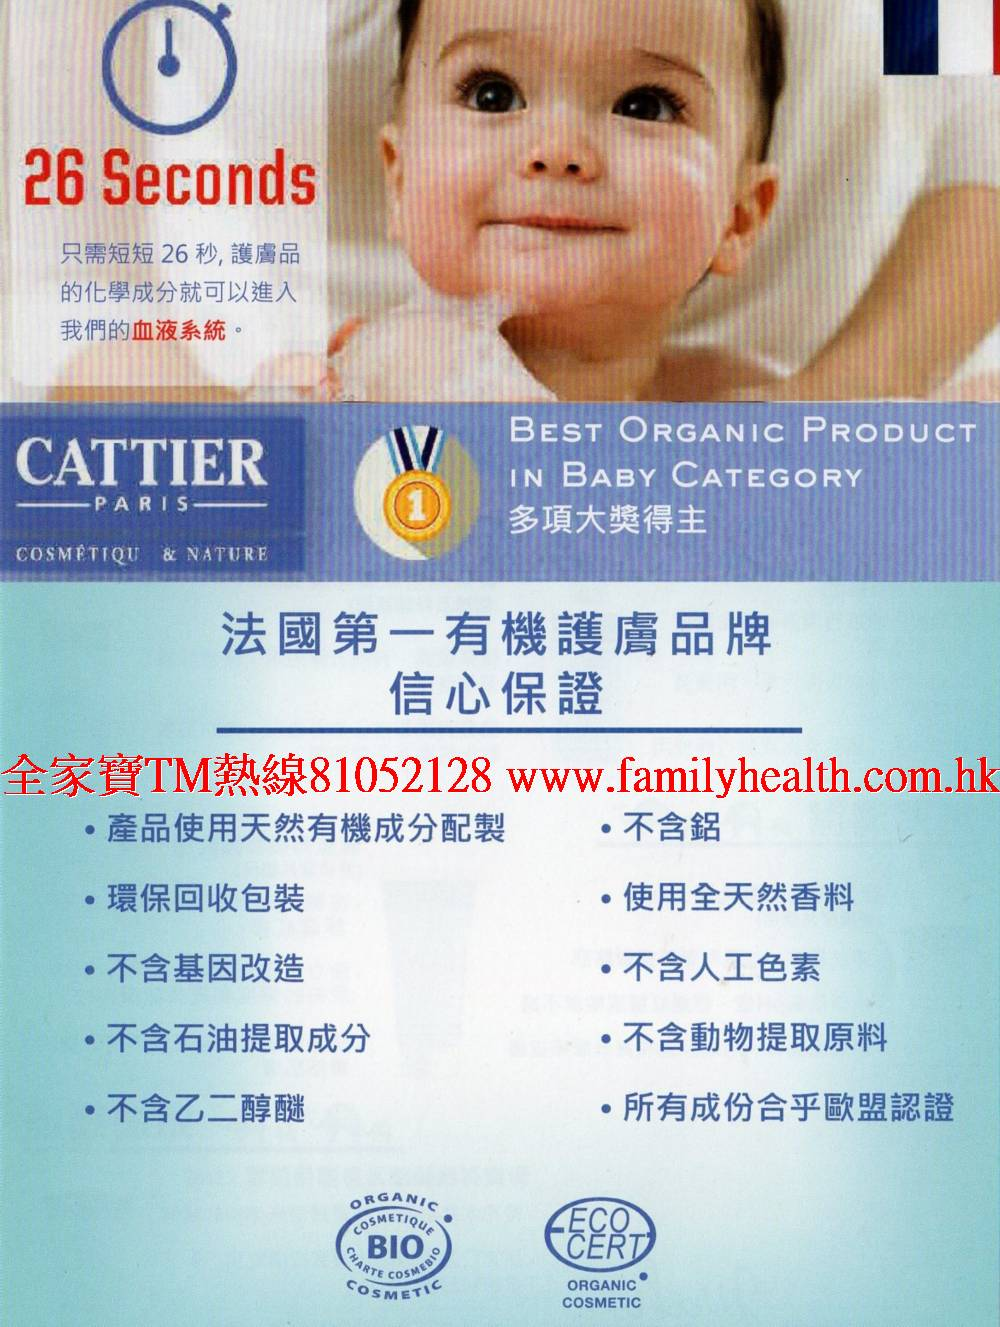 http://www.familyhealth.com.hk/files/full/902_1.jpg